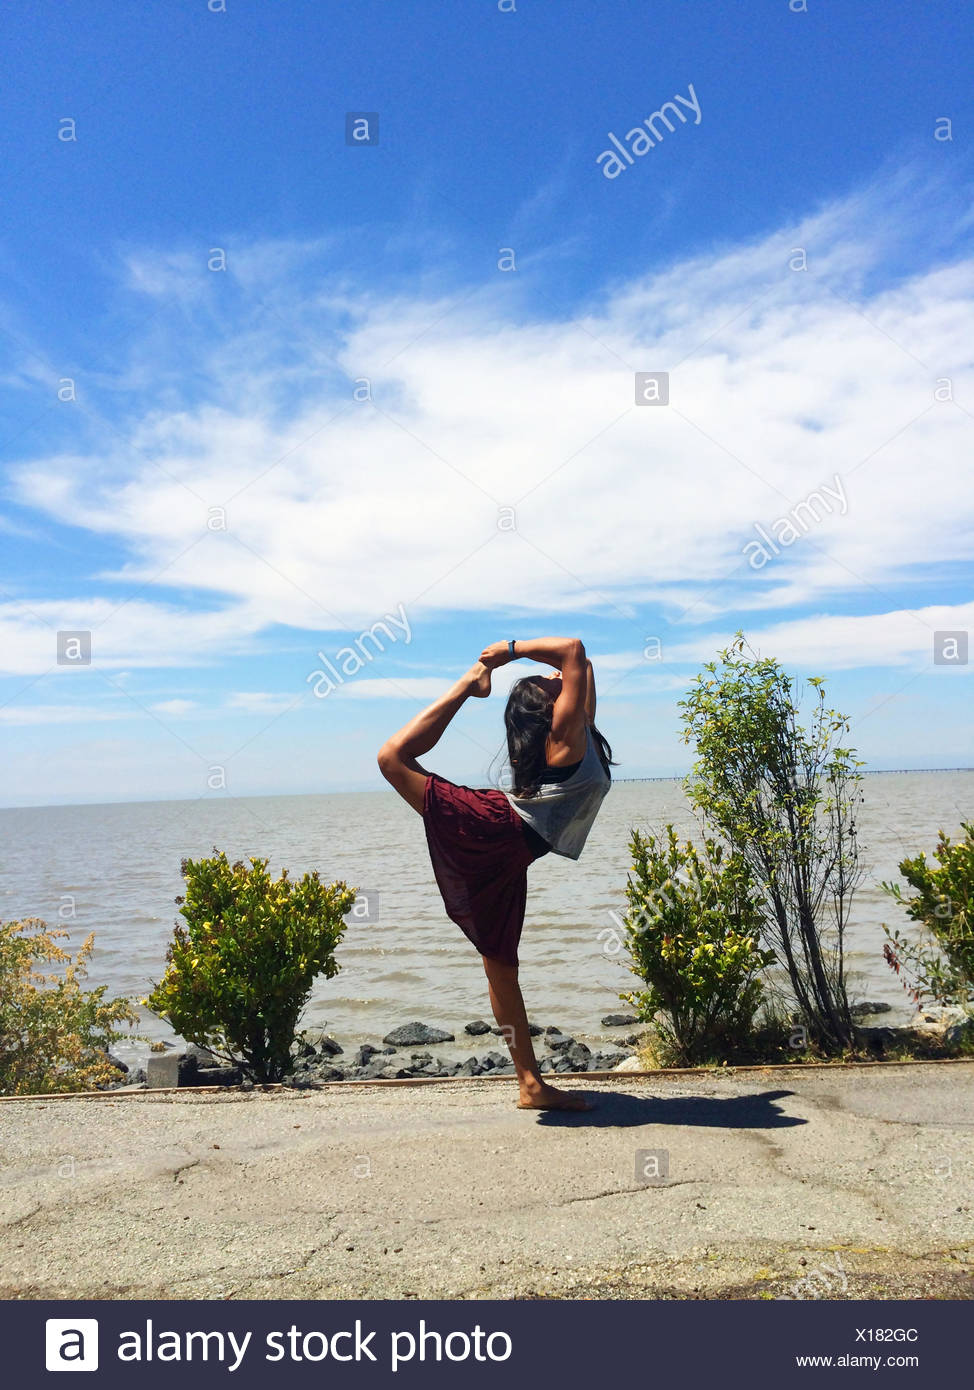 Girl doing yoga tirant bow permanent on beach Photo Stock